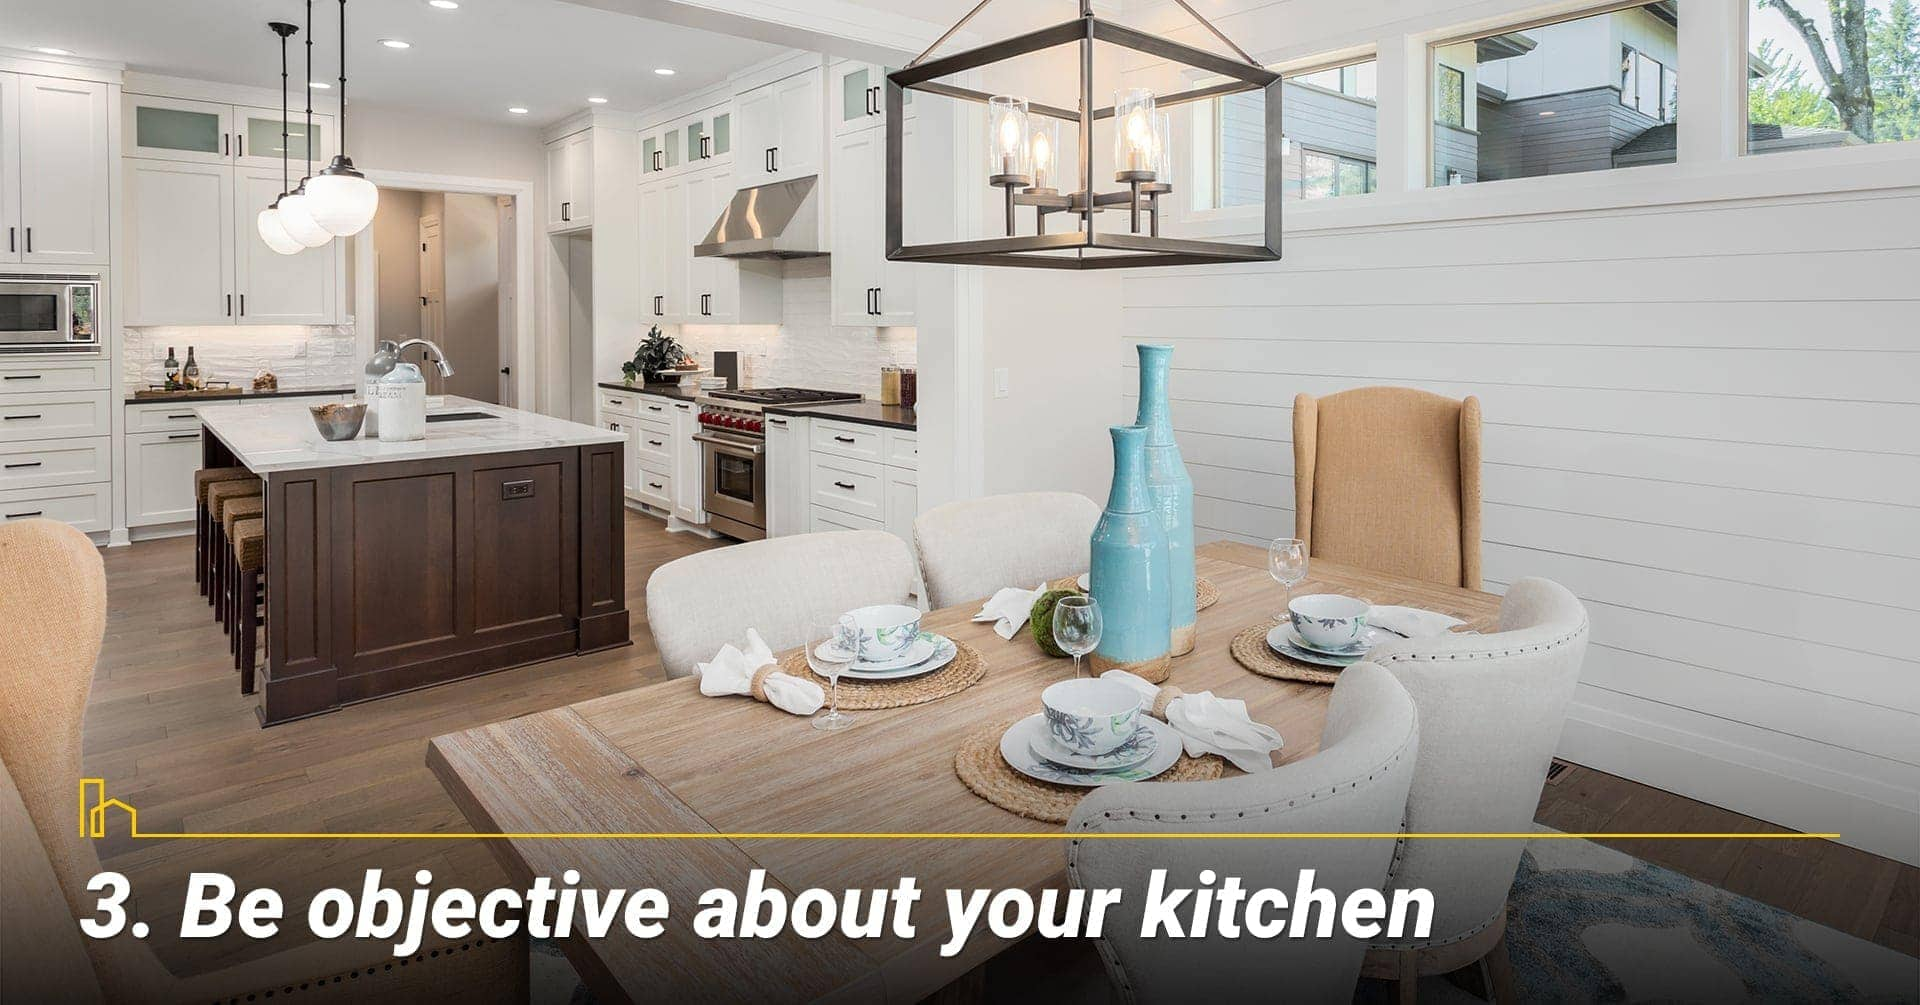 Be objective about your kitchen